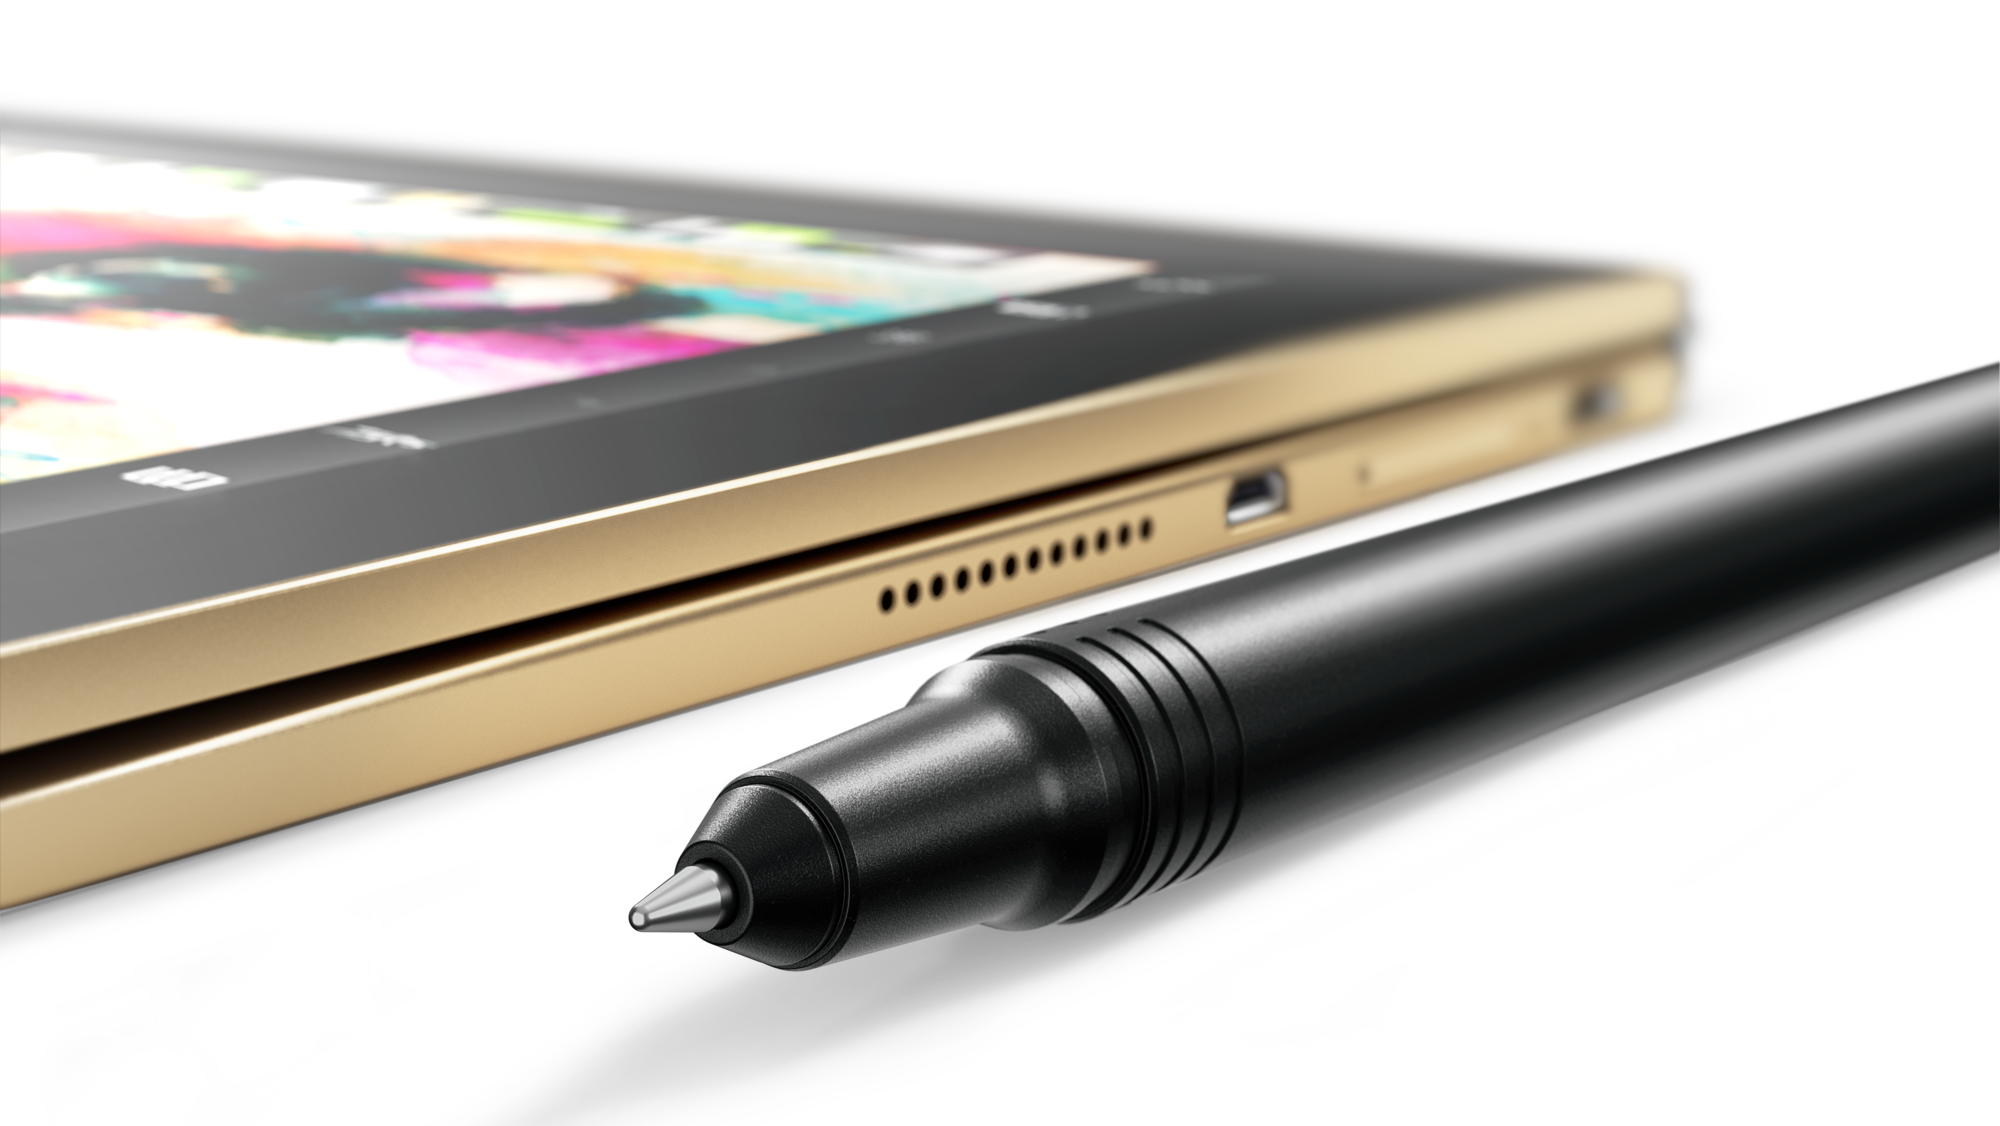 Yoga Book Real Pen